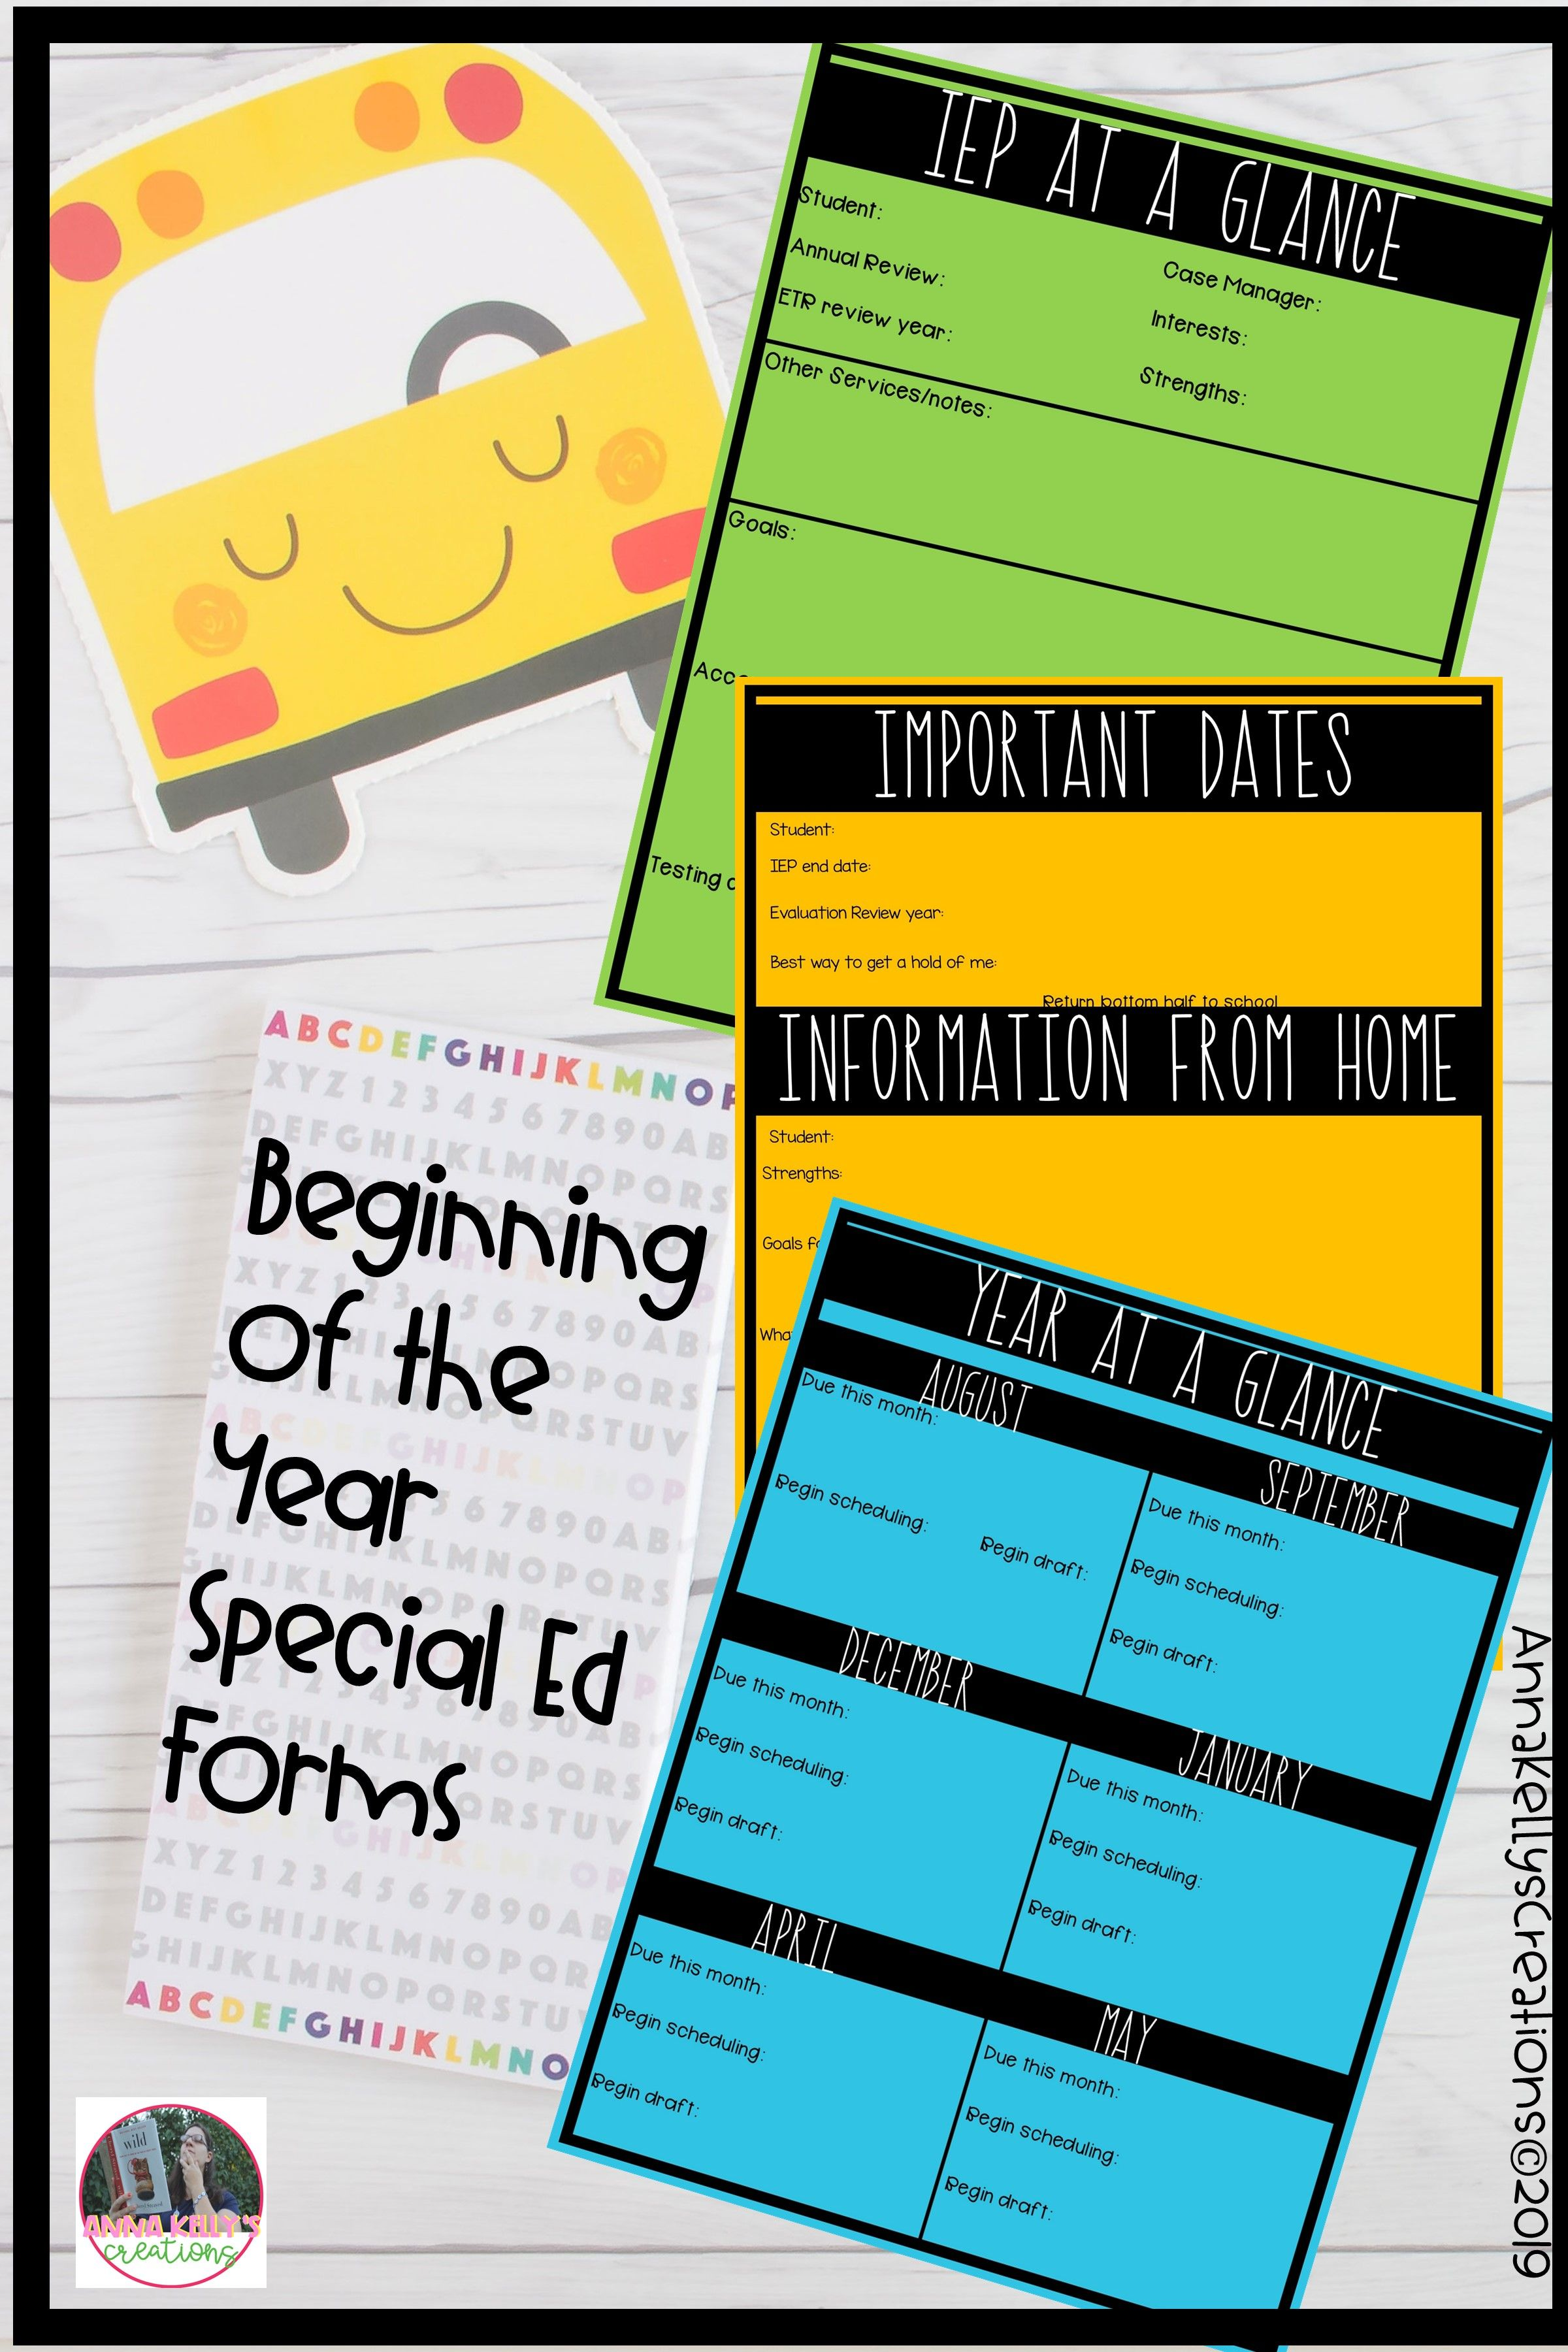 Beginning Of The Year Special Ed Forms Iep At A Glance